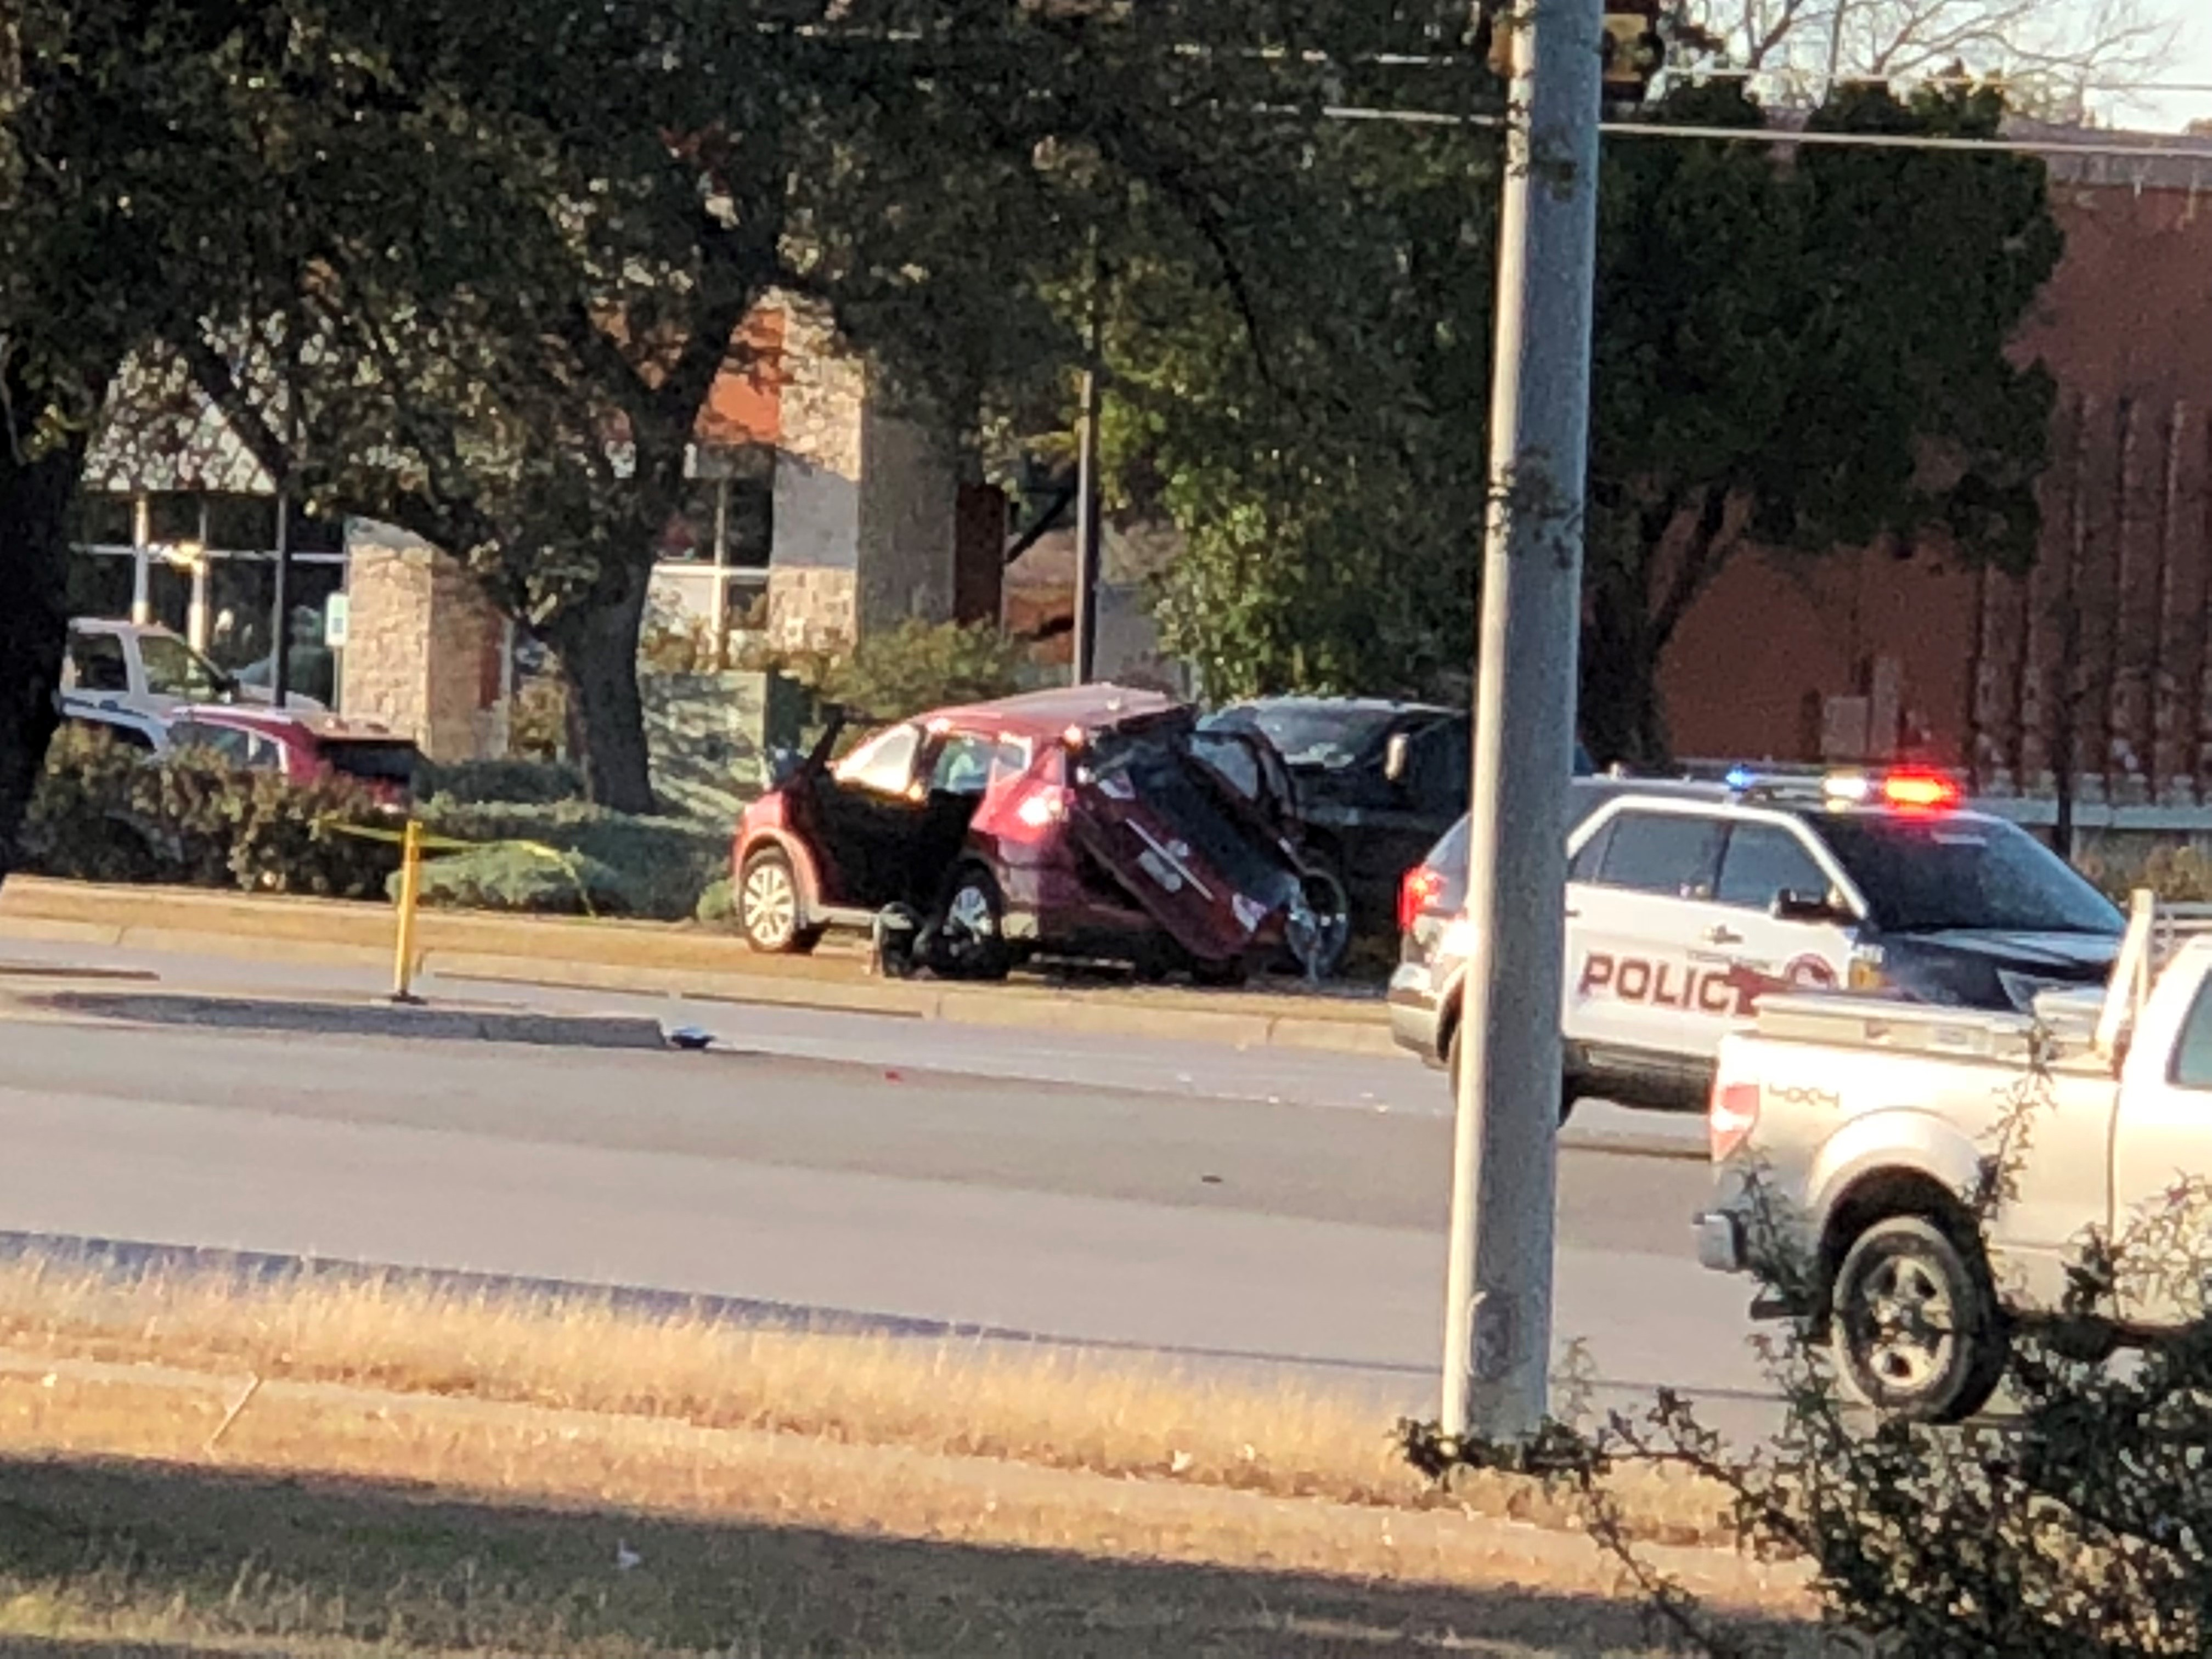 Two children died in a two-vehicle crash on W. Whitestone Boulevard and Walton Way in Cedar Park on Jan. 10, 2018. (KXAN Viewer Photo)